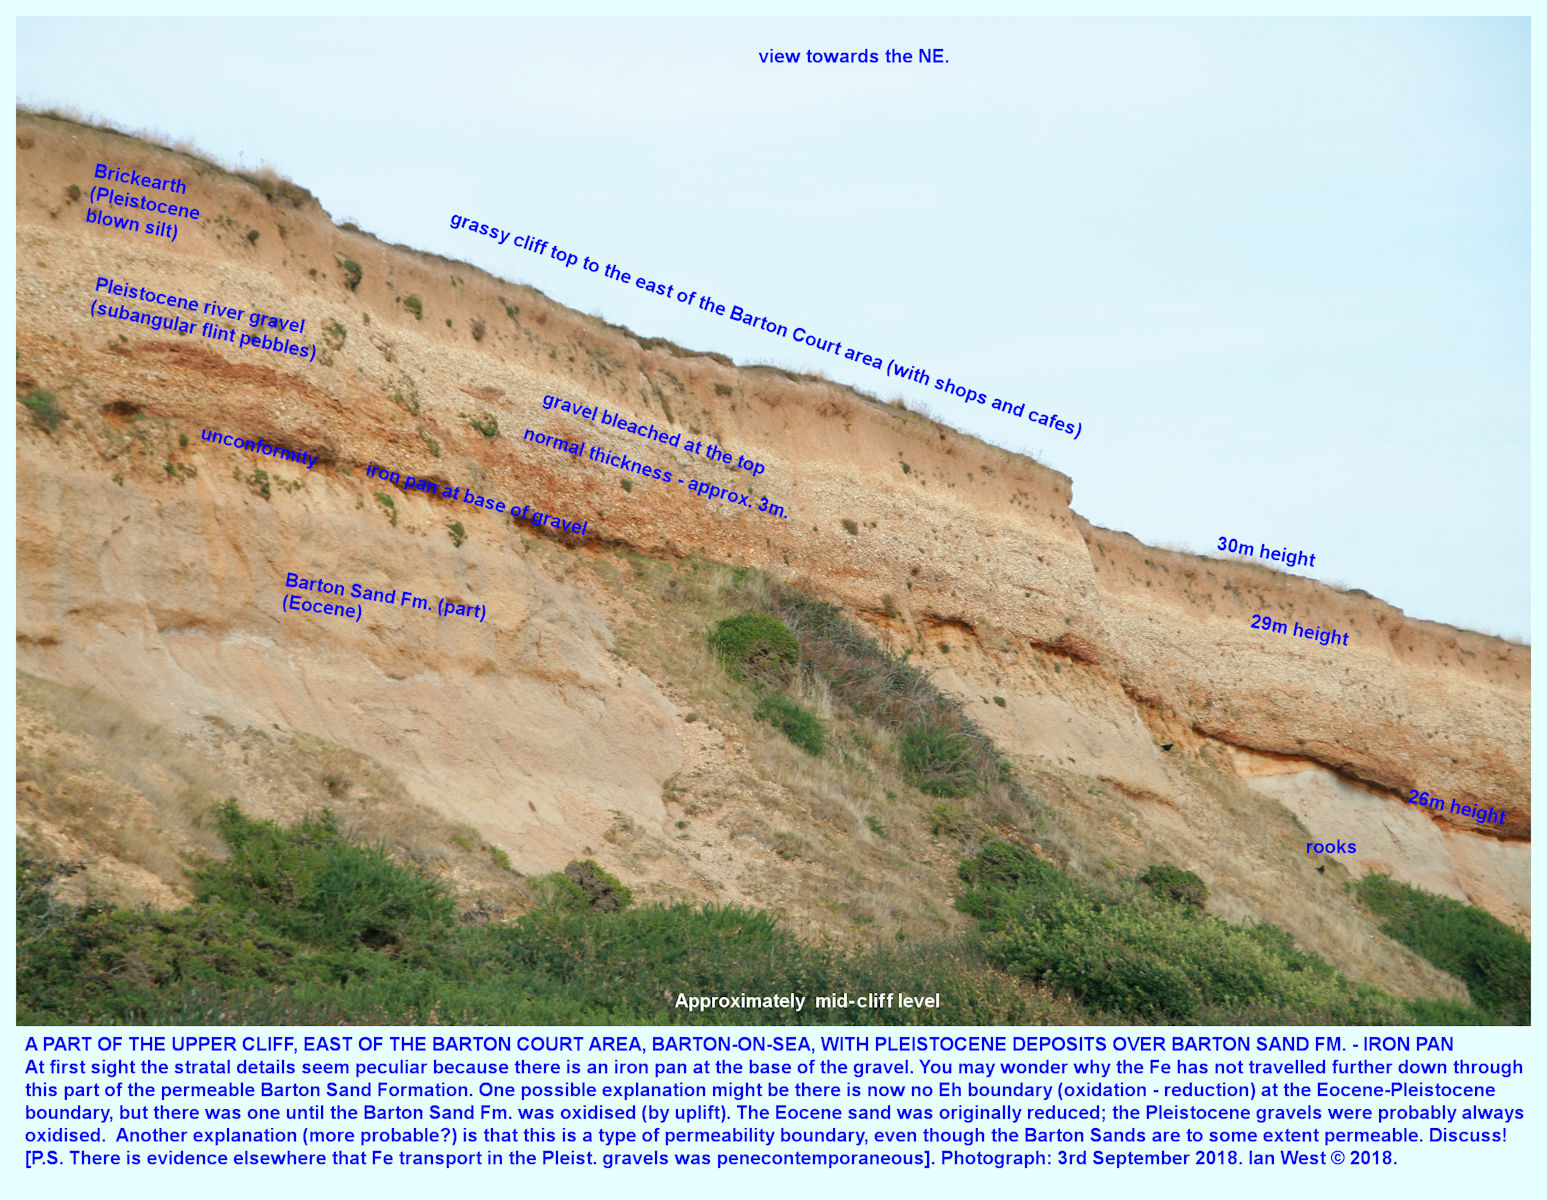 Typical Pleistocene, subangular, flint gravel of  Terrace 9, in the cliff, east of Barton Court, Barton-on-Sea, Hampshire, with a transitional junction to brickearth above, and, in contrast, with an abrupt iron-pan junction beneath